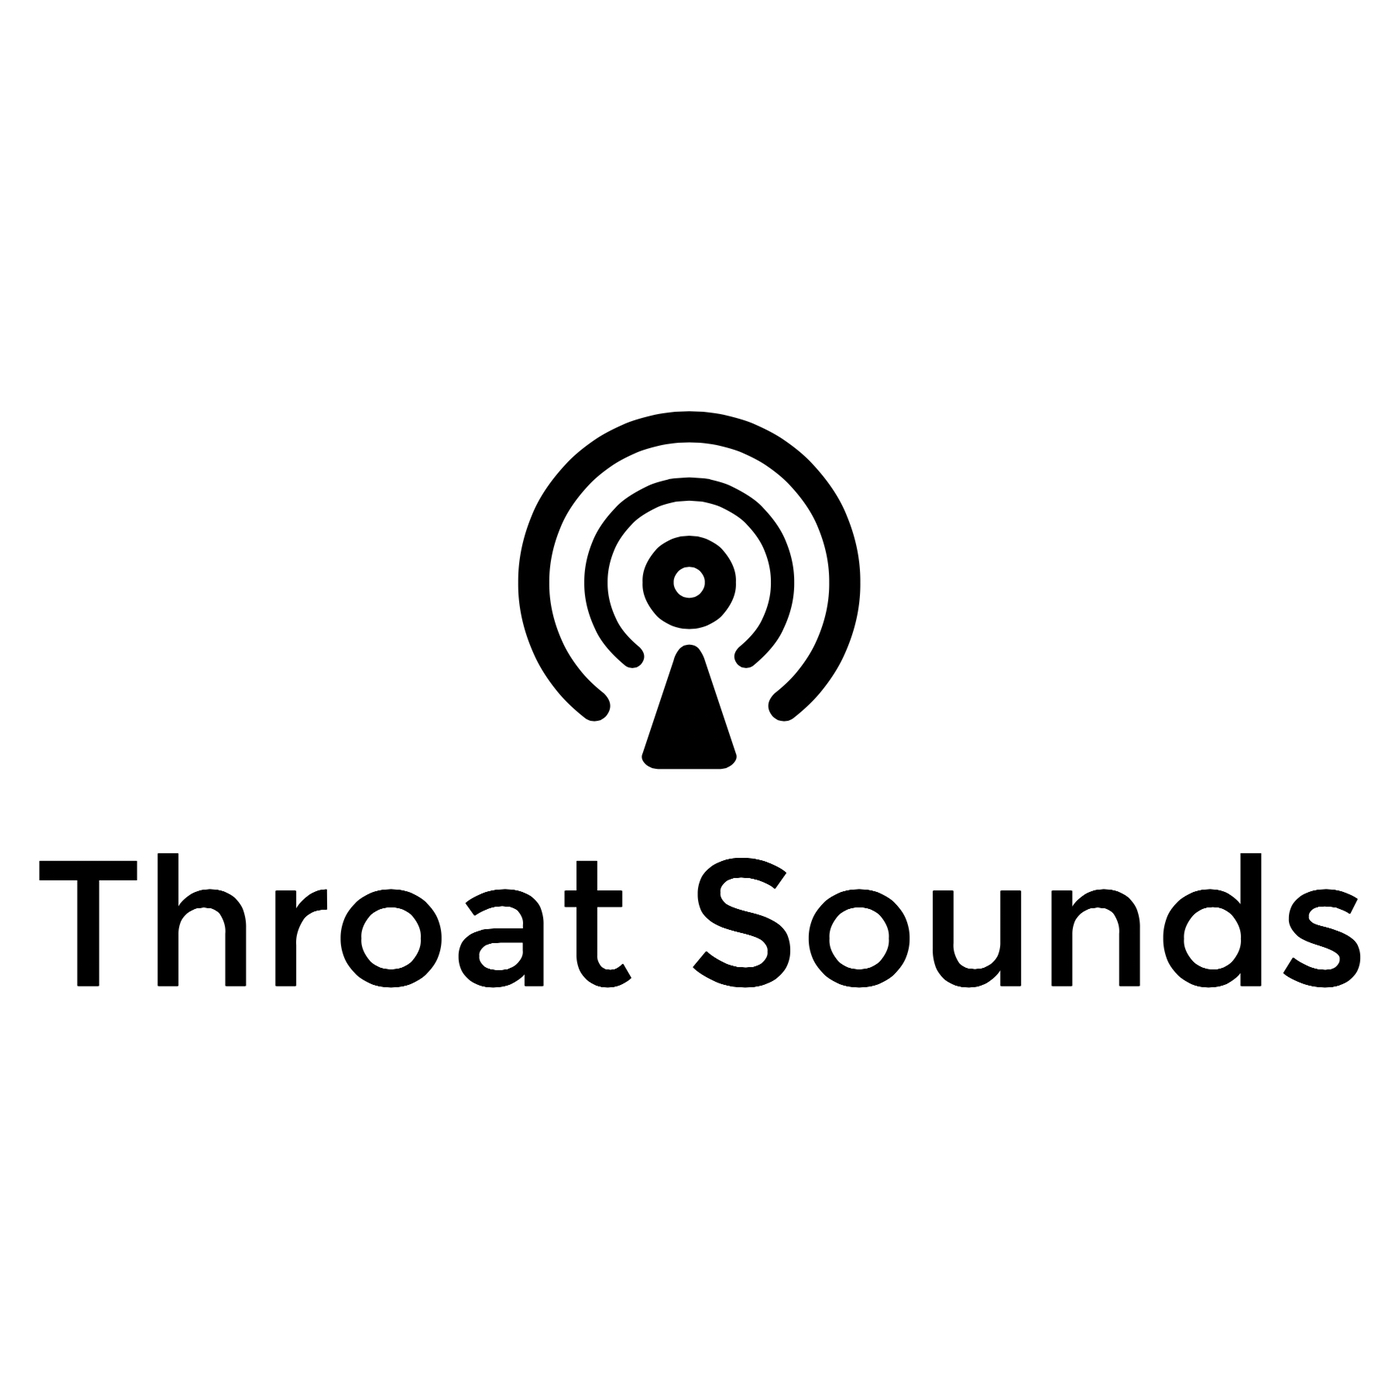 Throat Sounds